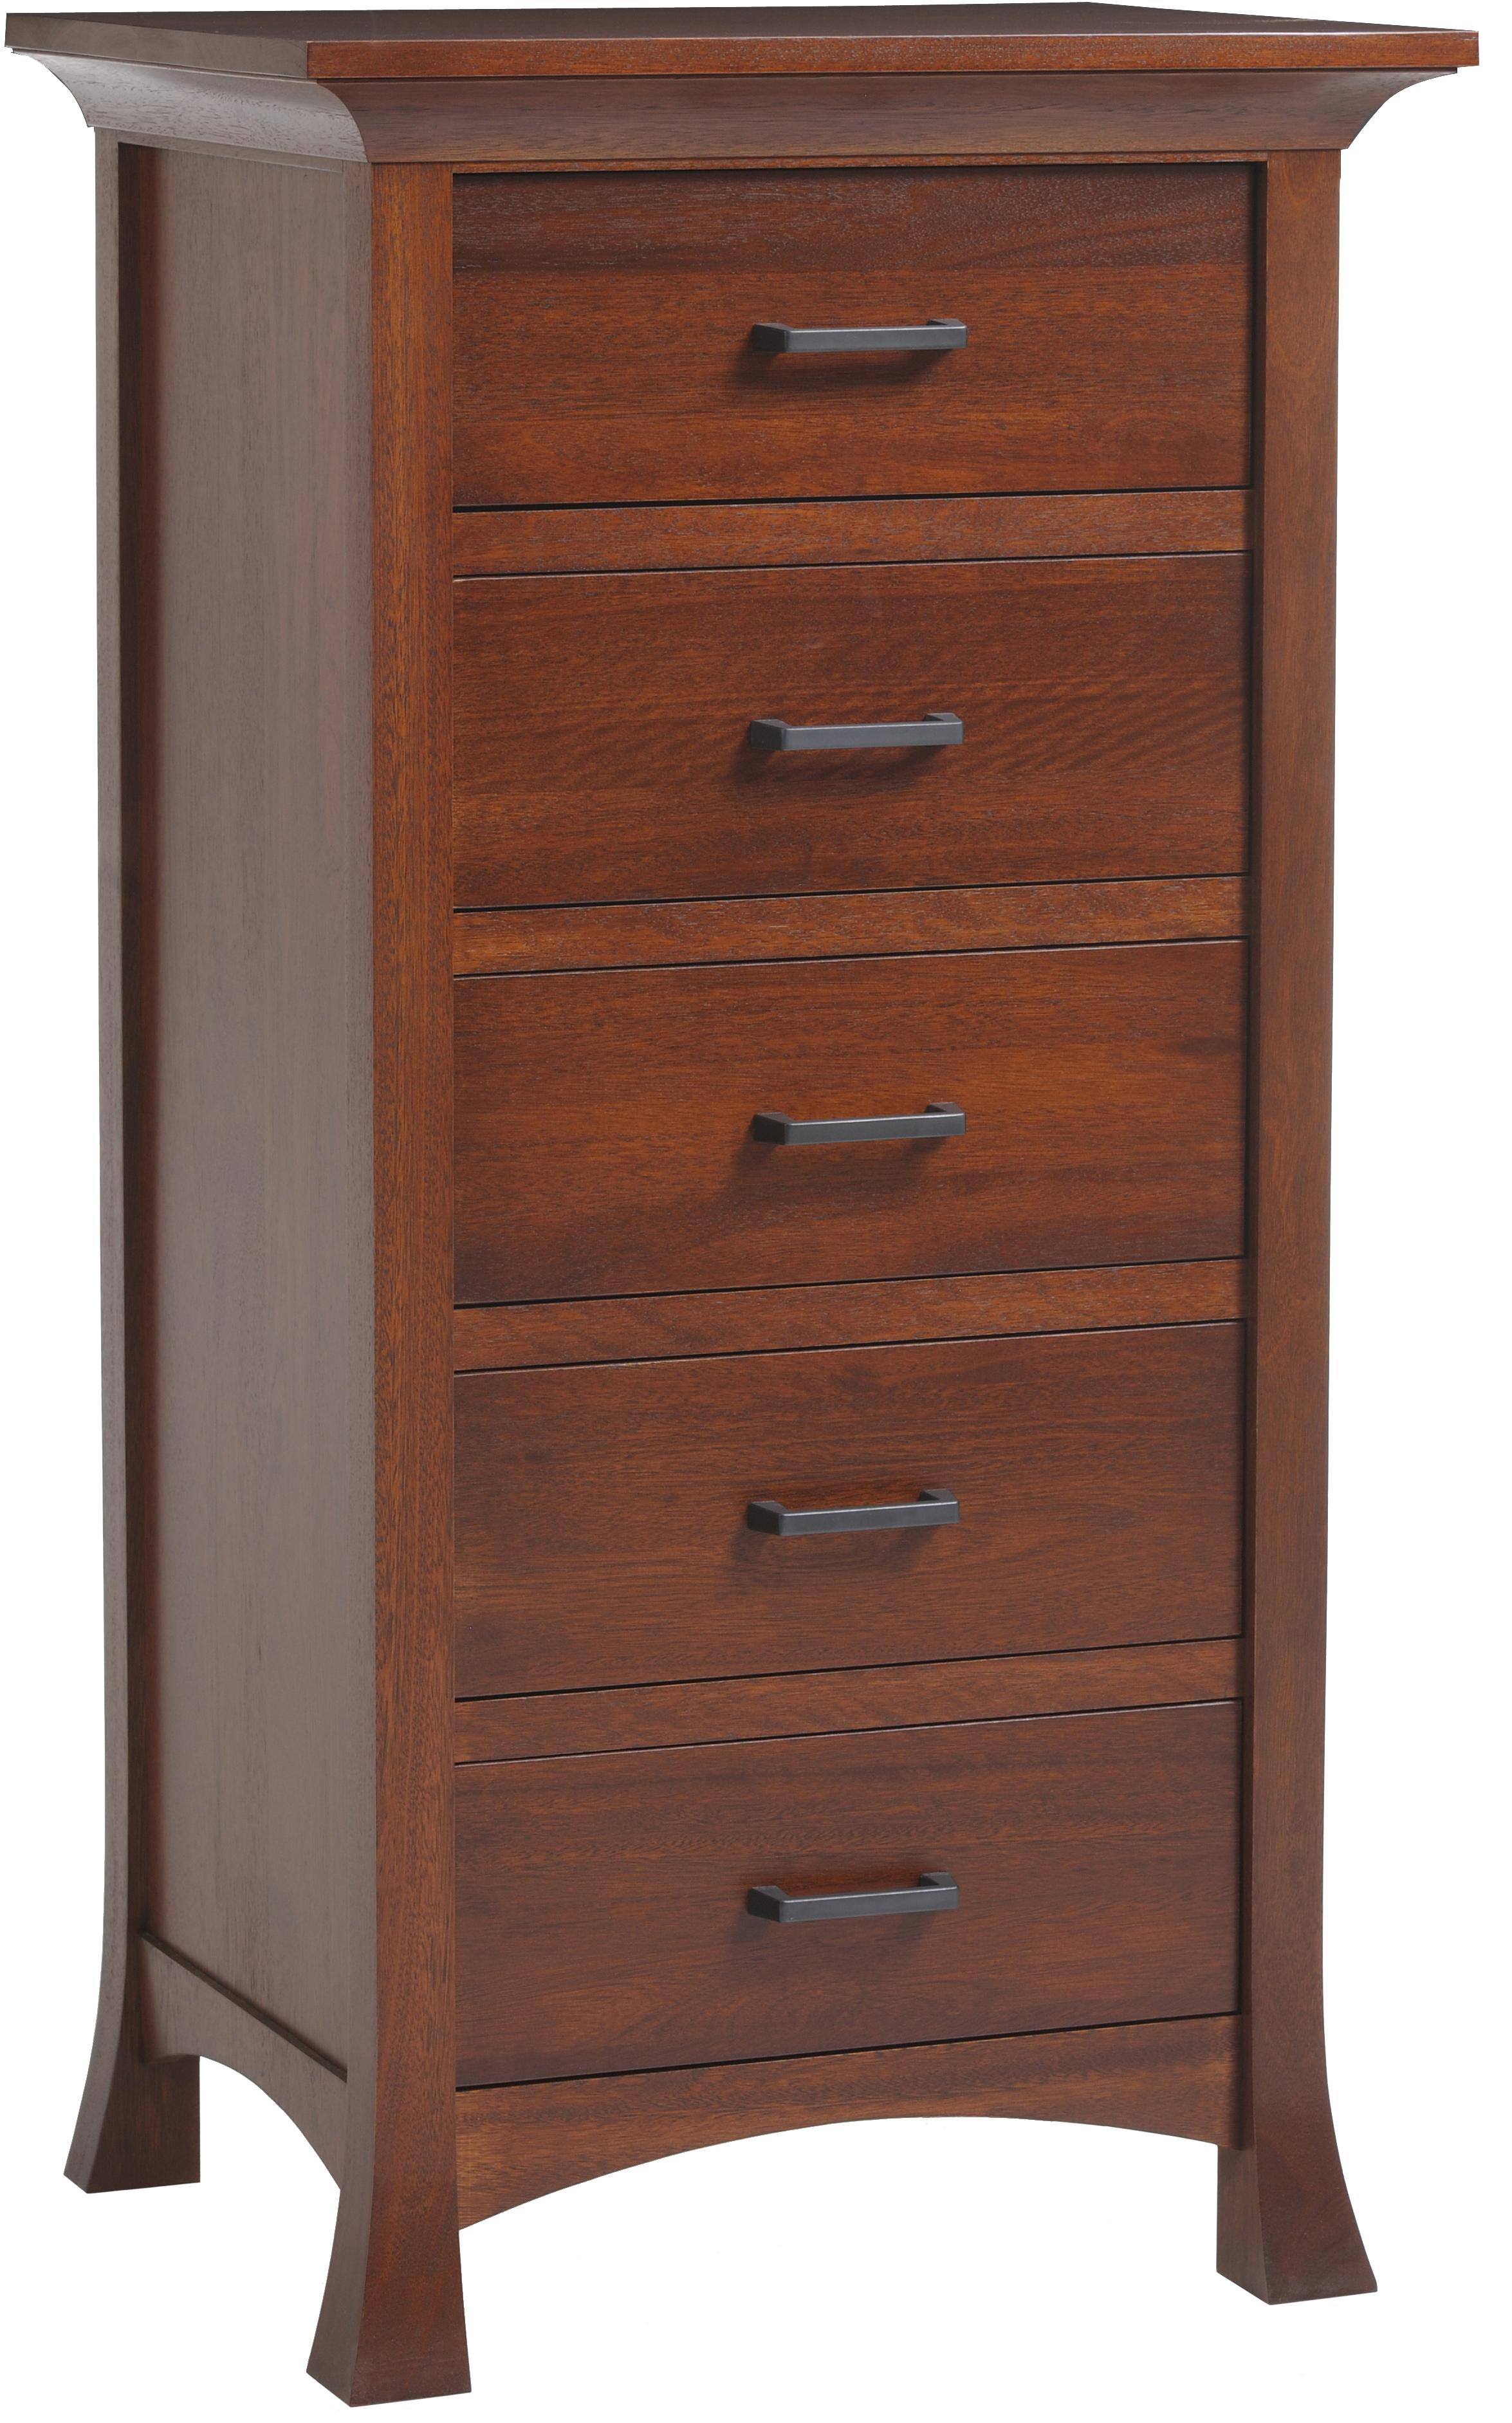 Oasis Lingerie Chest by Millcraft at Saugerties Furniture Mart